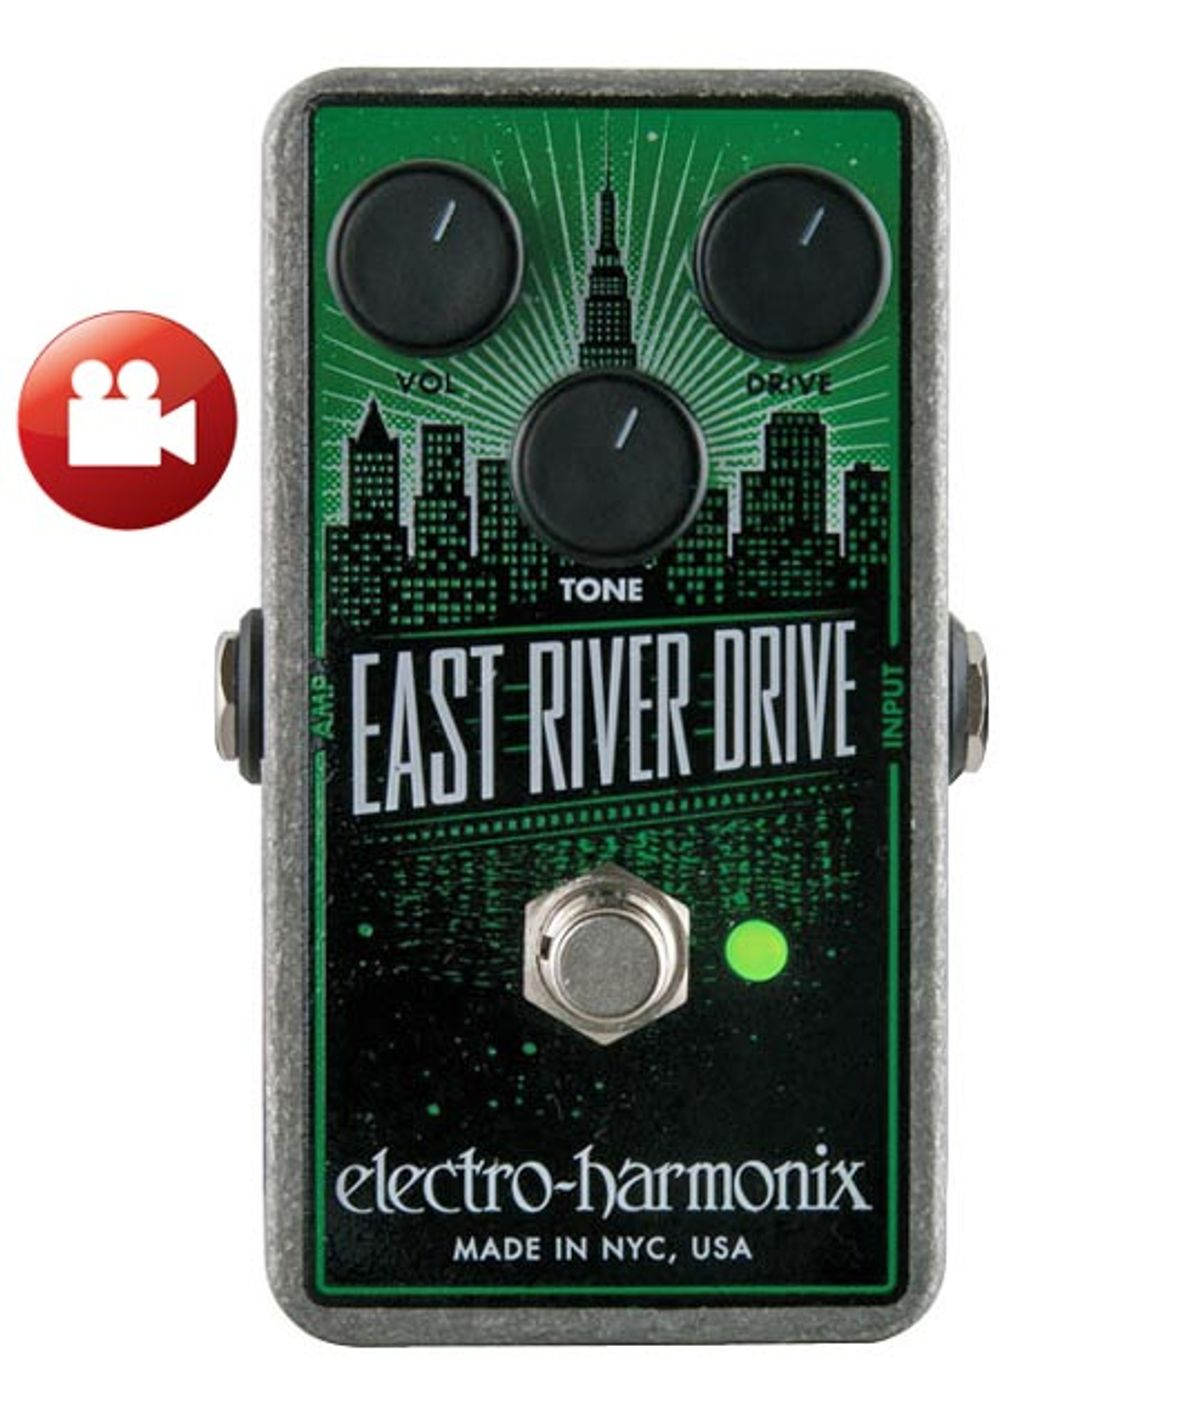 Electro-Harmonix East River Drive Review